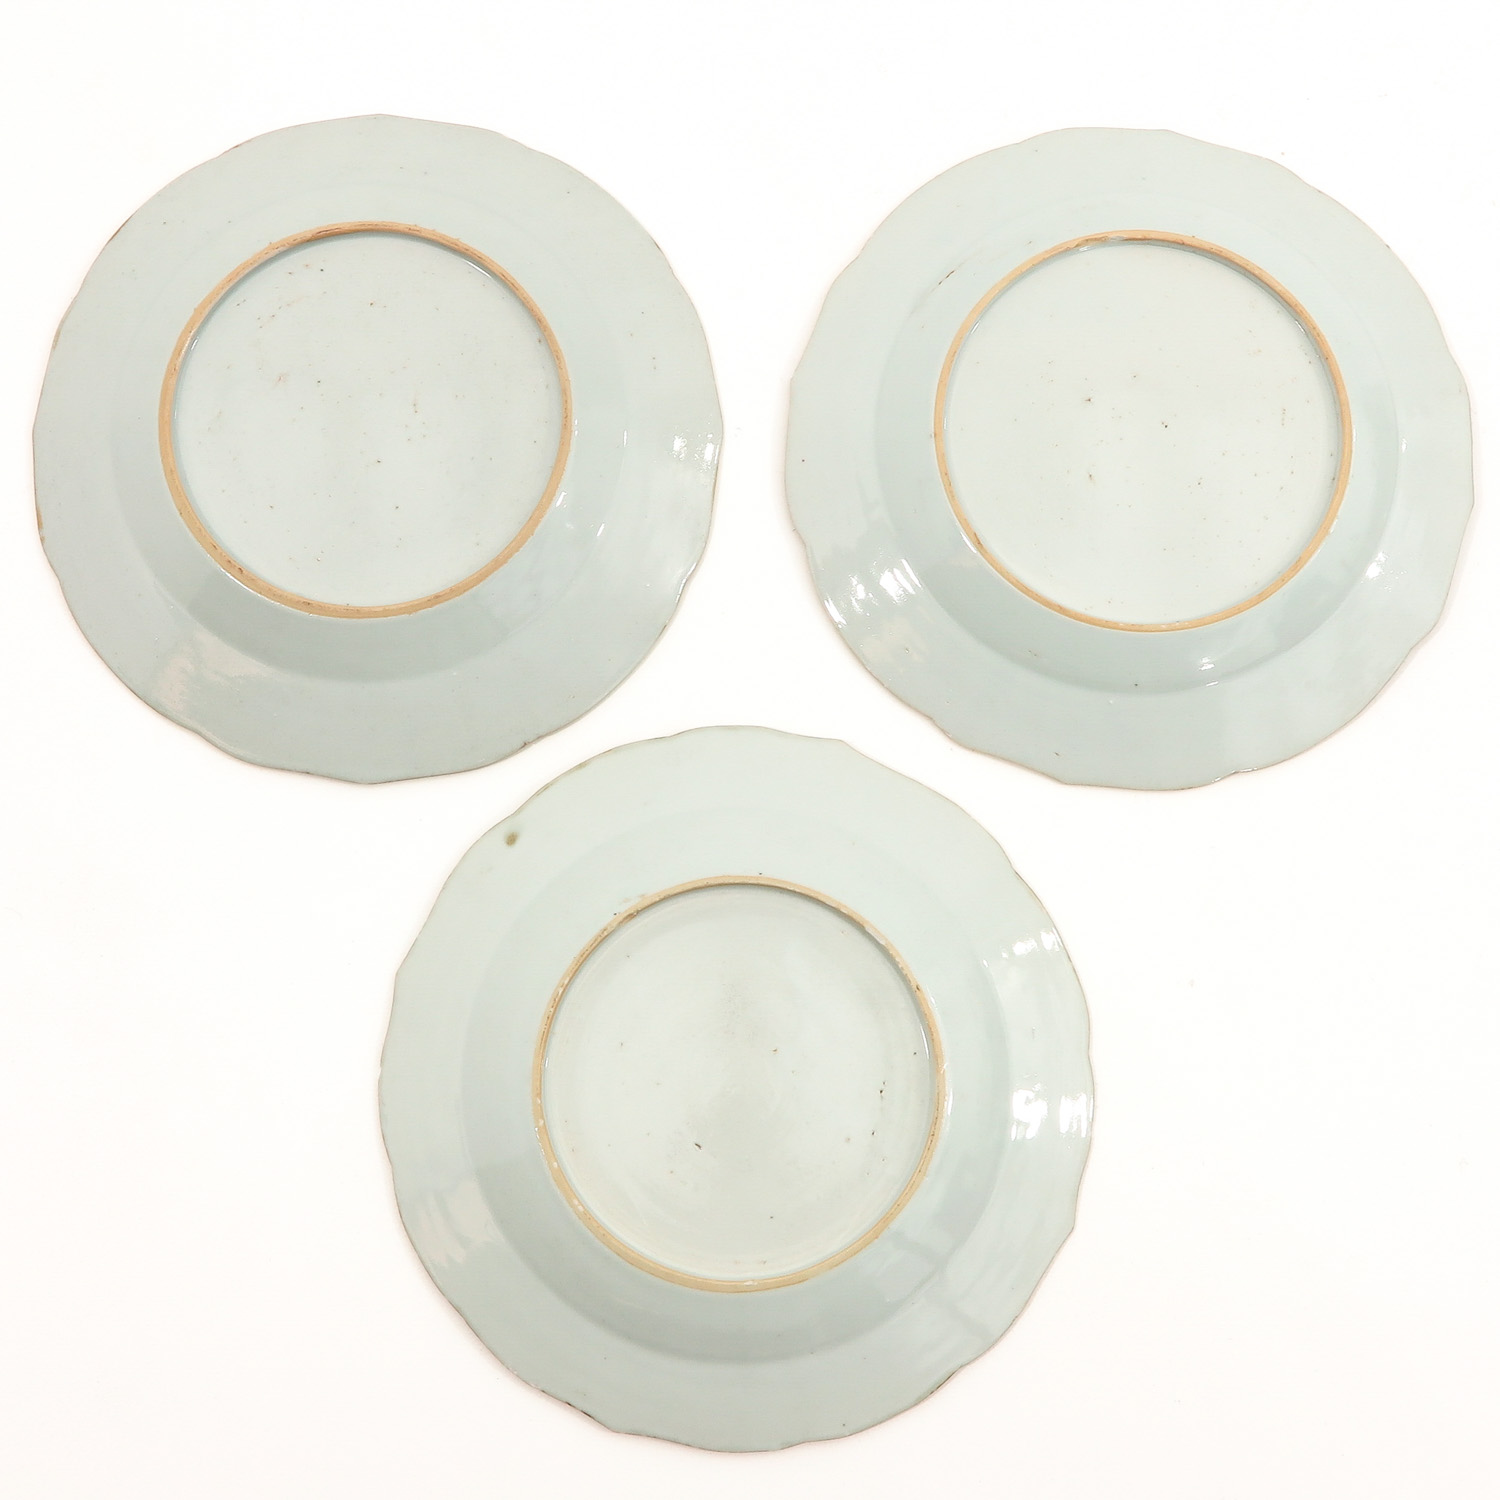 A Series of 8 Famille Rose Plates - Image 6 of 10